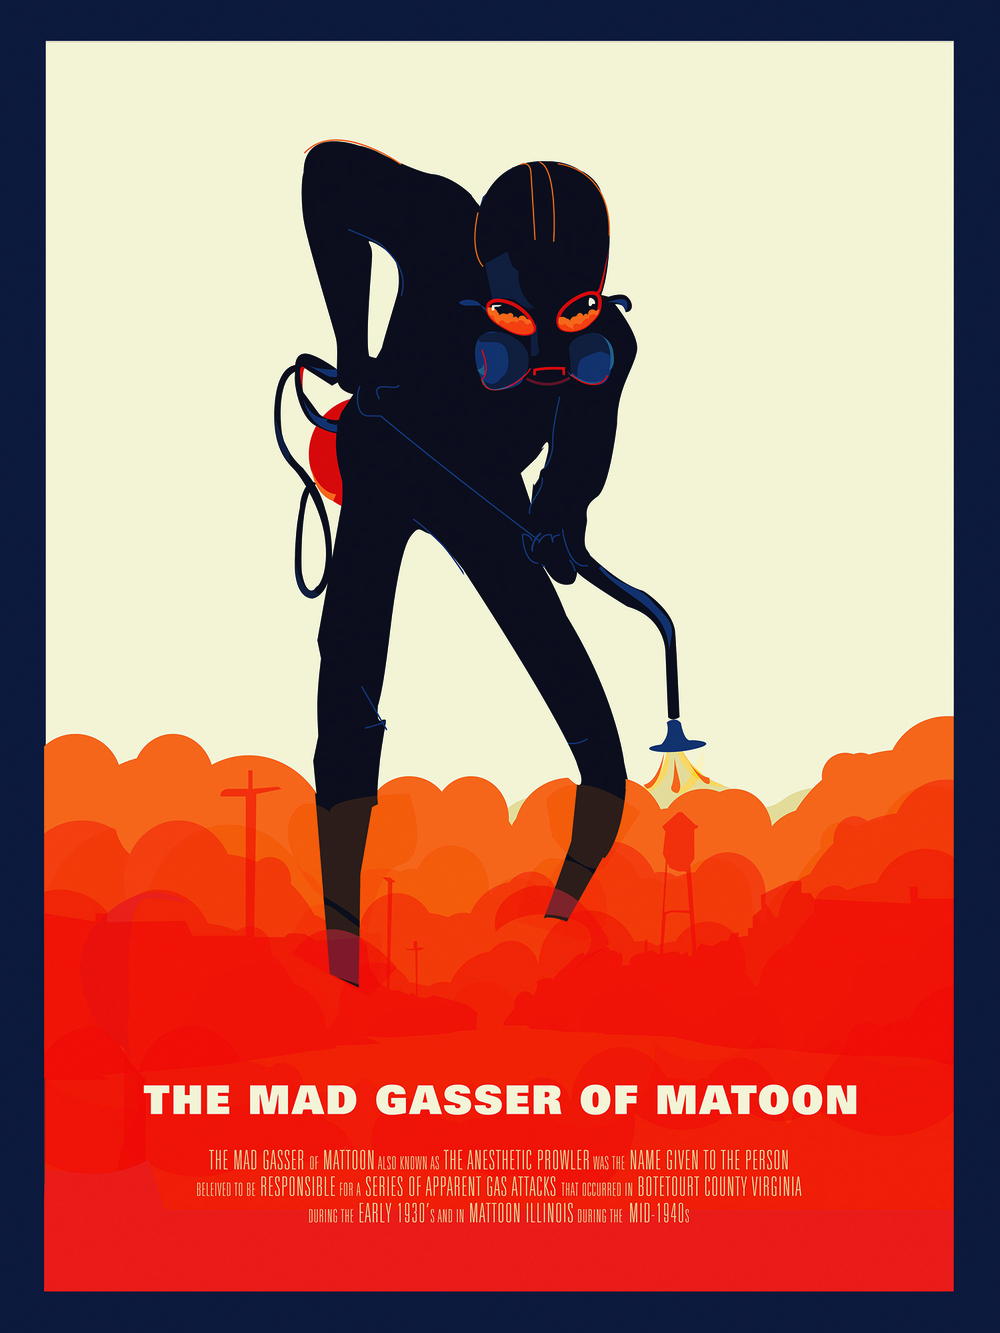 "The Mad Gasser of Matoon (VARIANT) 18"" by 24"" Giclee Print on Archival Signed & Number Limited Edition of 10 30.00"